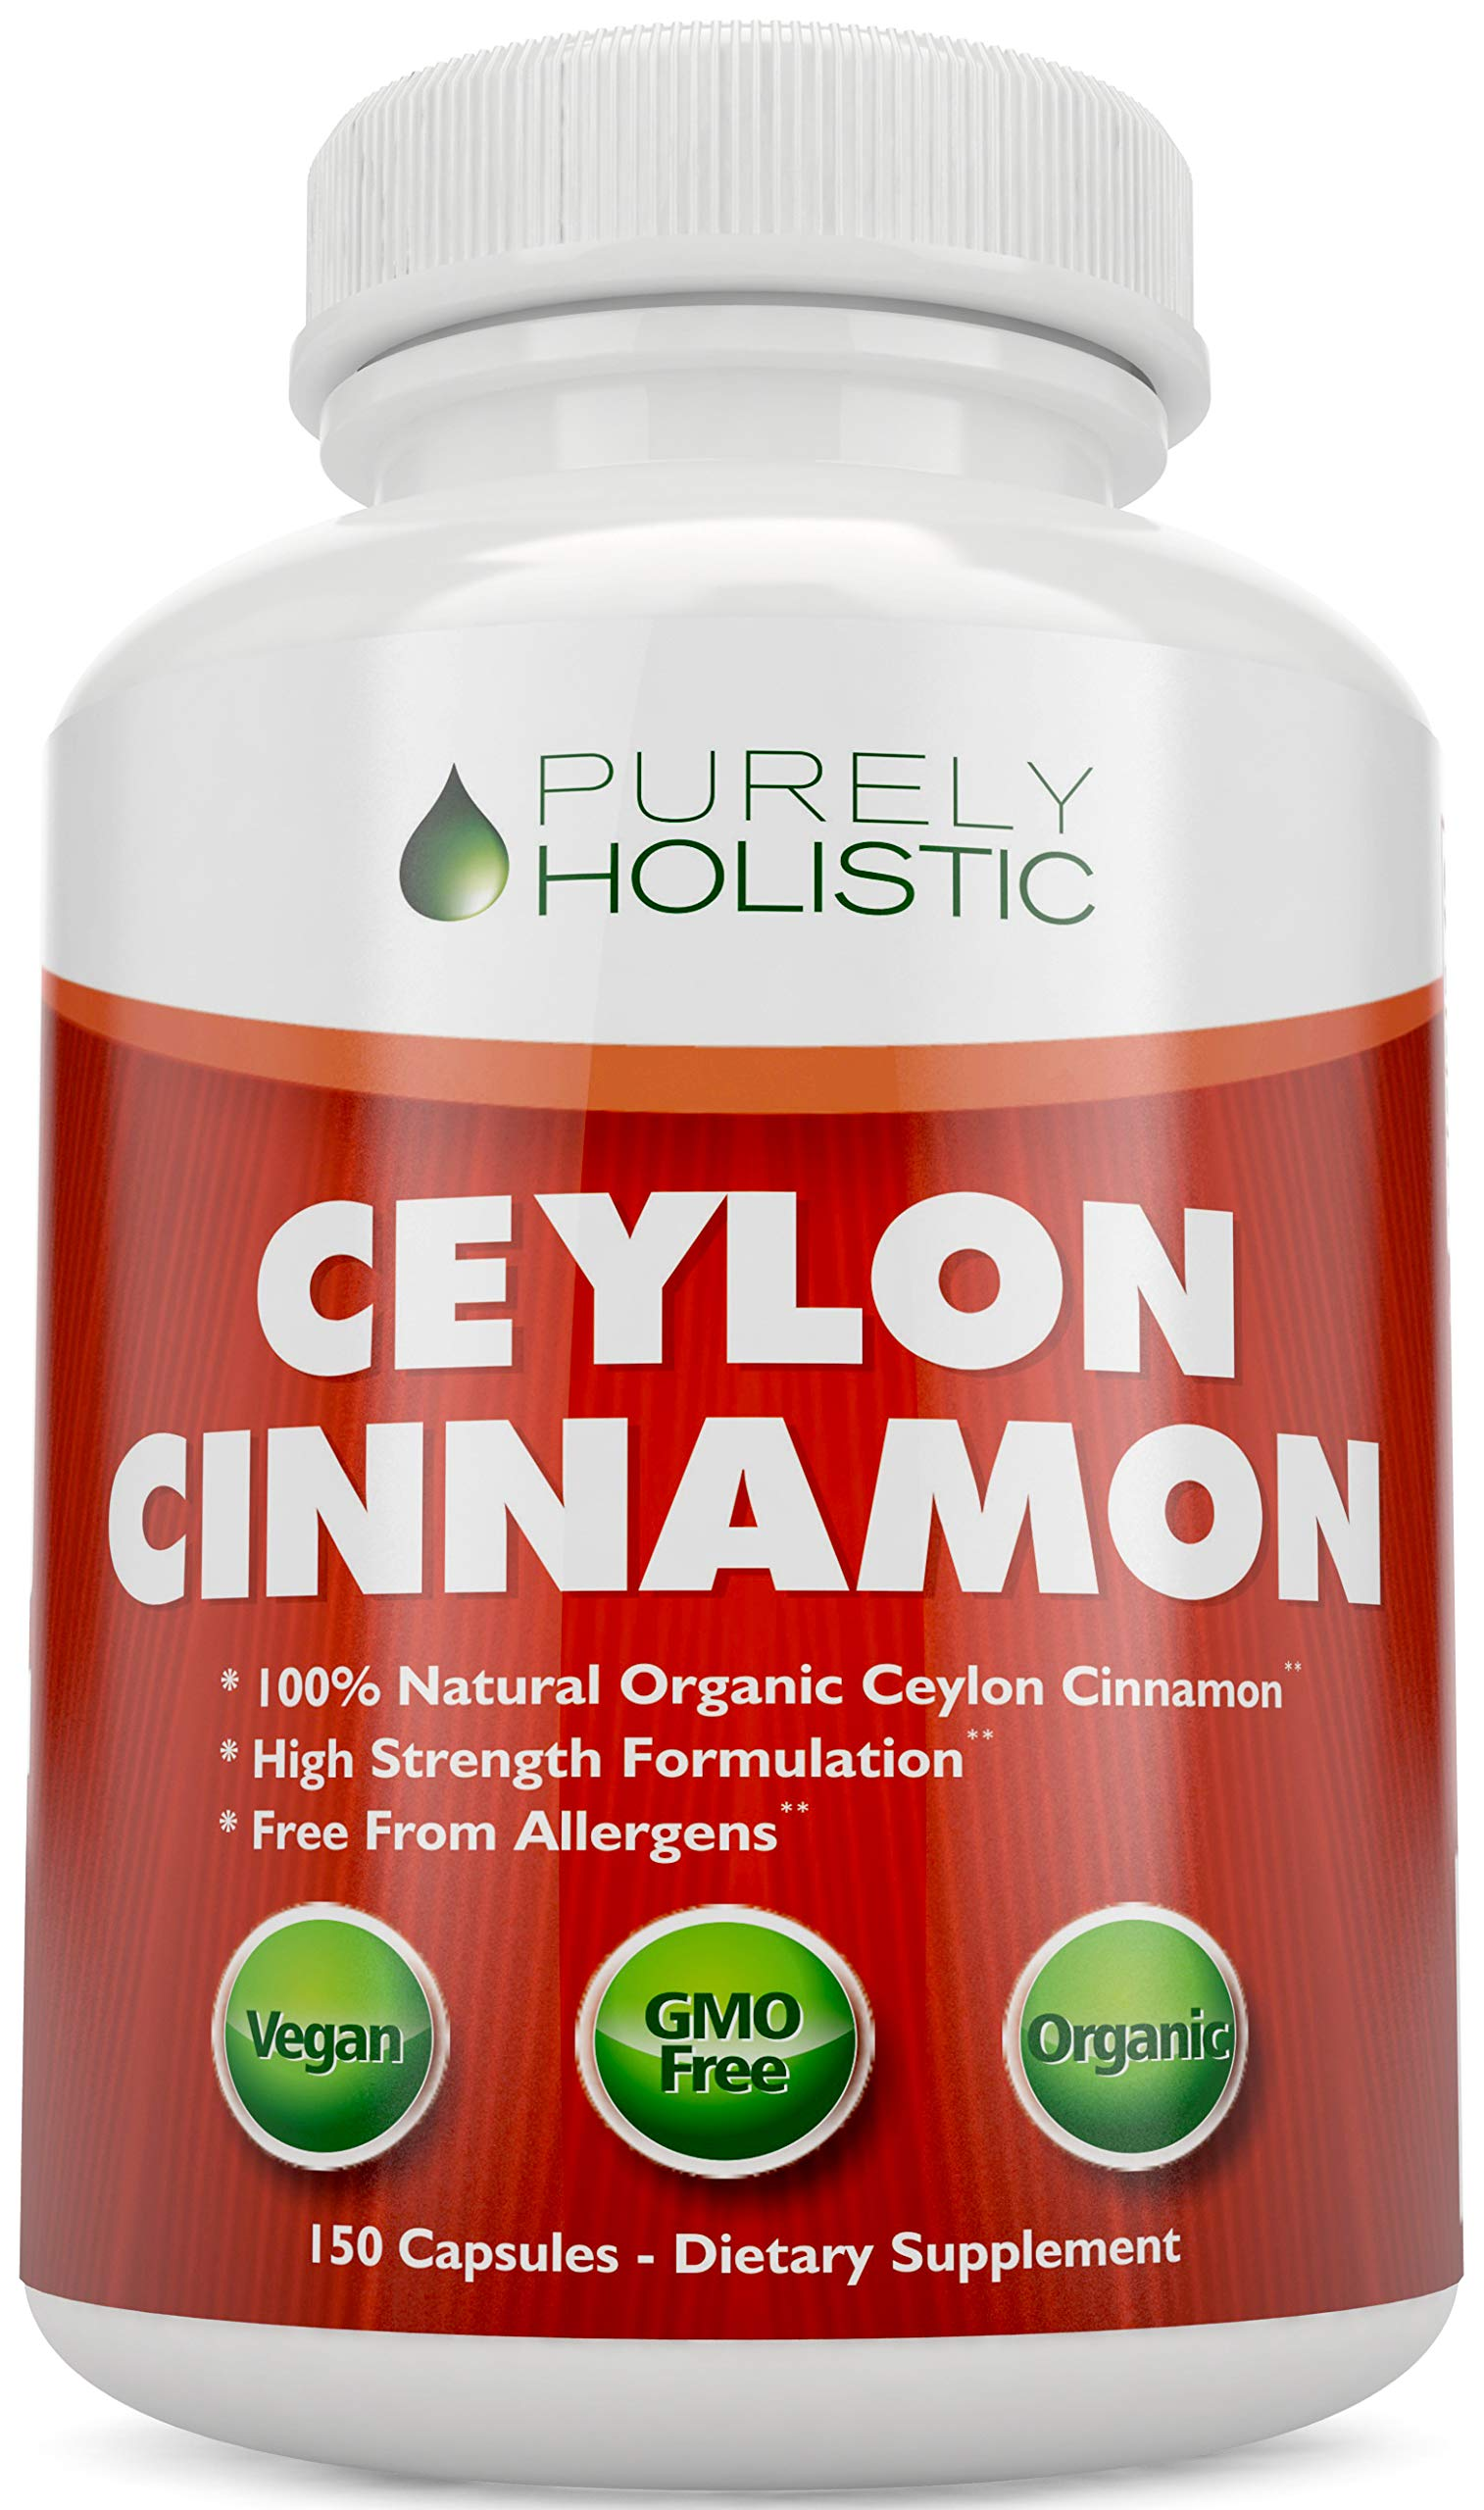 Ceylon Cinnamon Capsules 1500mg 150 Cinnamon Capsules Vegetarian & Vegan – 75 Day Supply (25% More) True Sri Lanka Ceylon Cinnamon Supplement Joint Support Blood Sugar Level Support